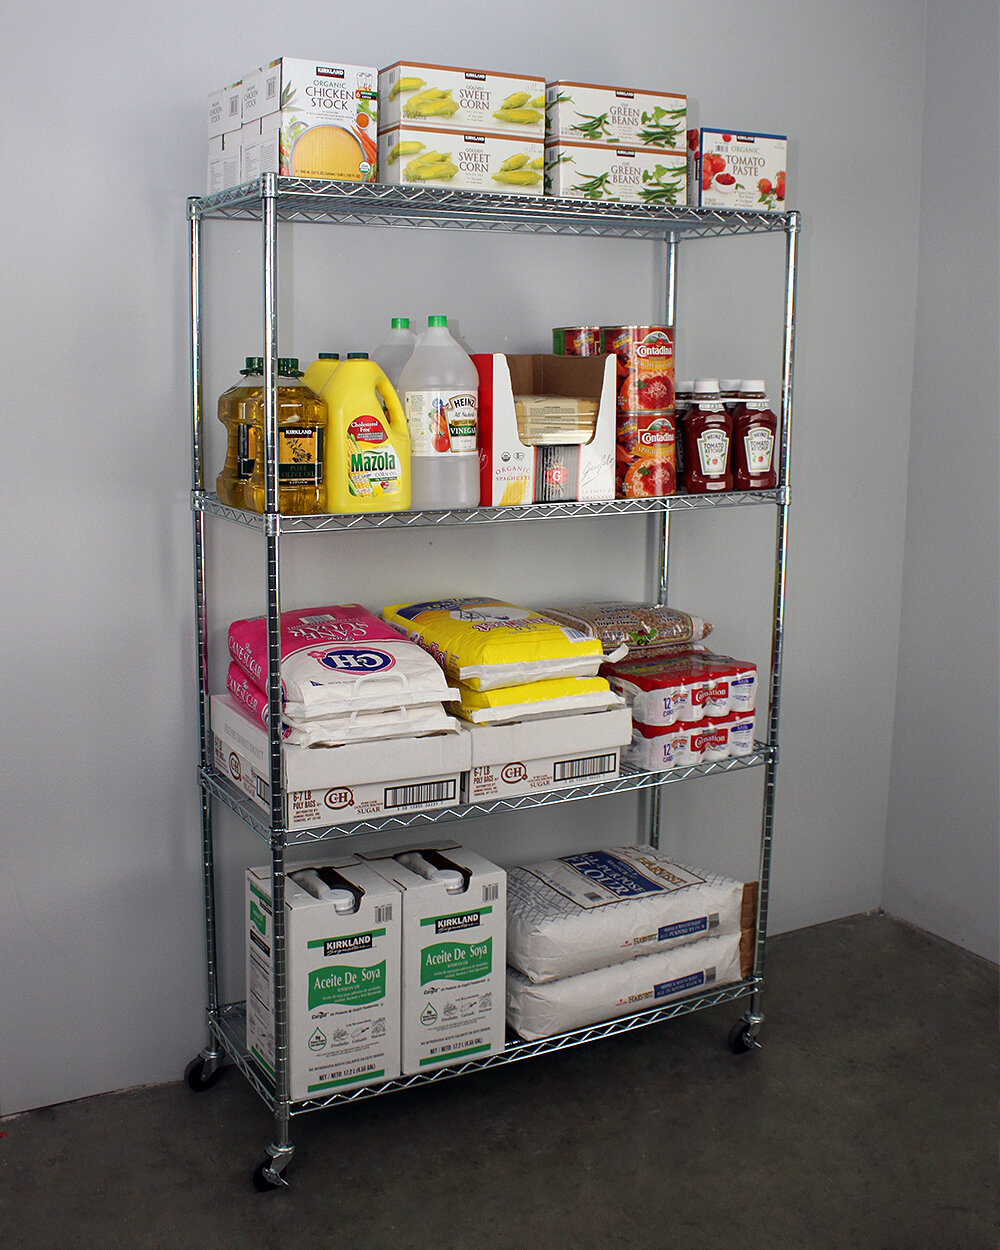 SafeRacks 4-Tier Wire Shelving Unit with Wheels | Wayfair